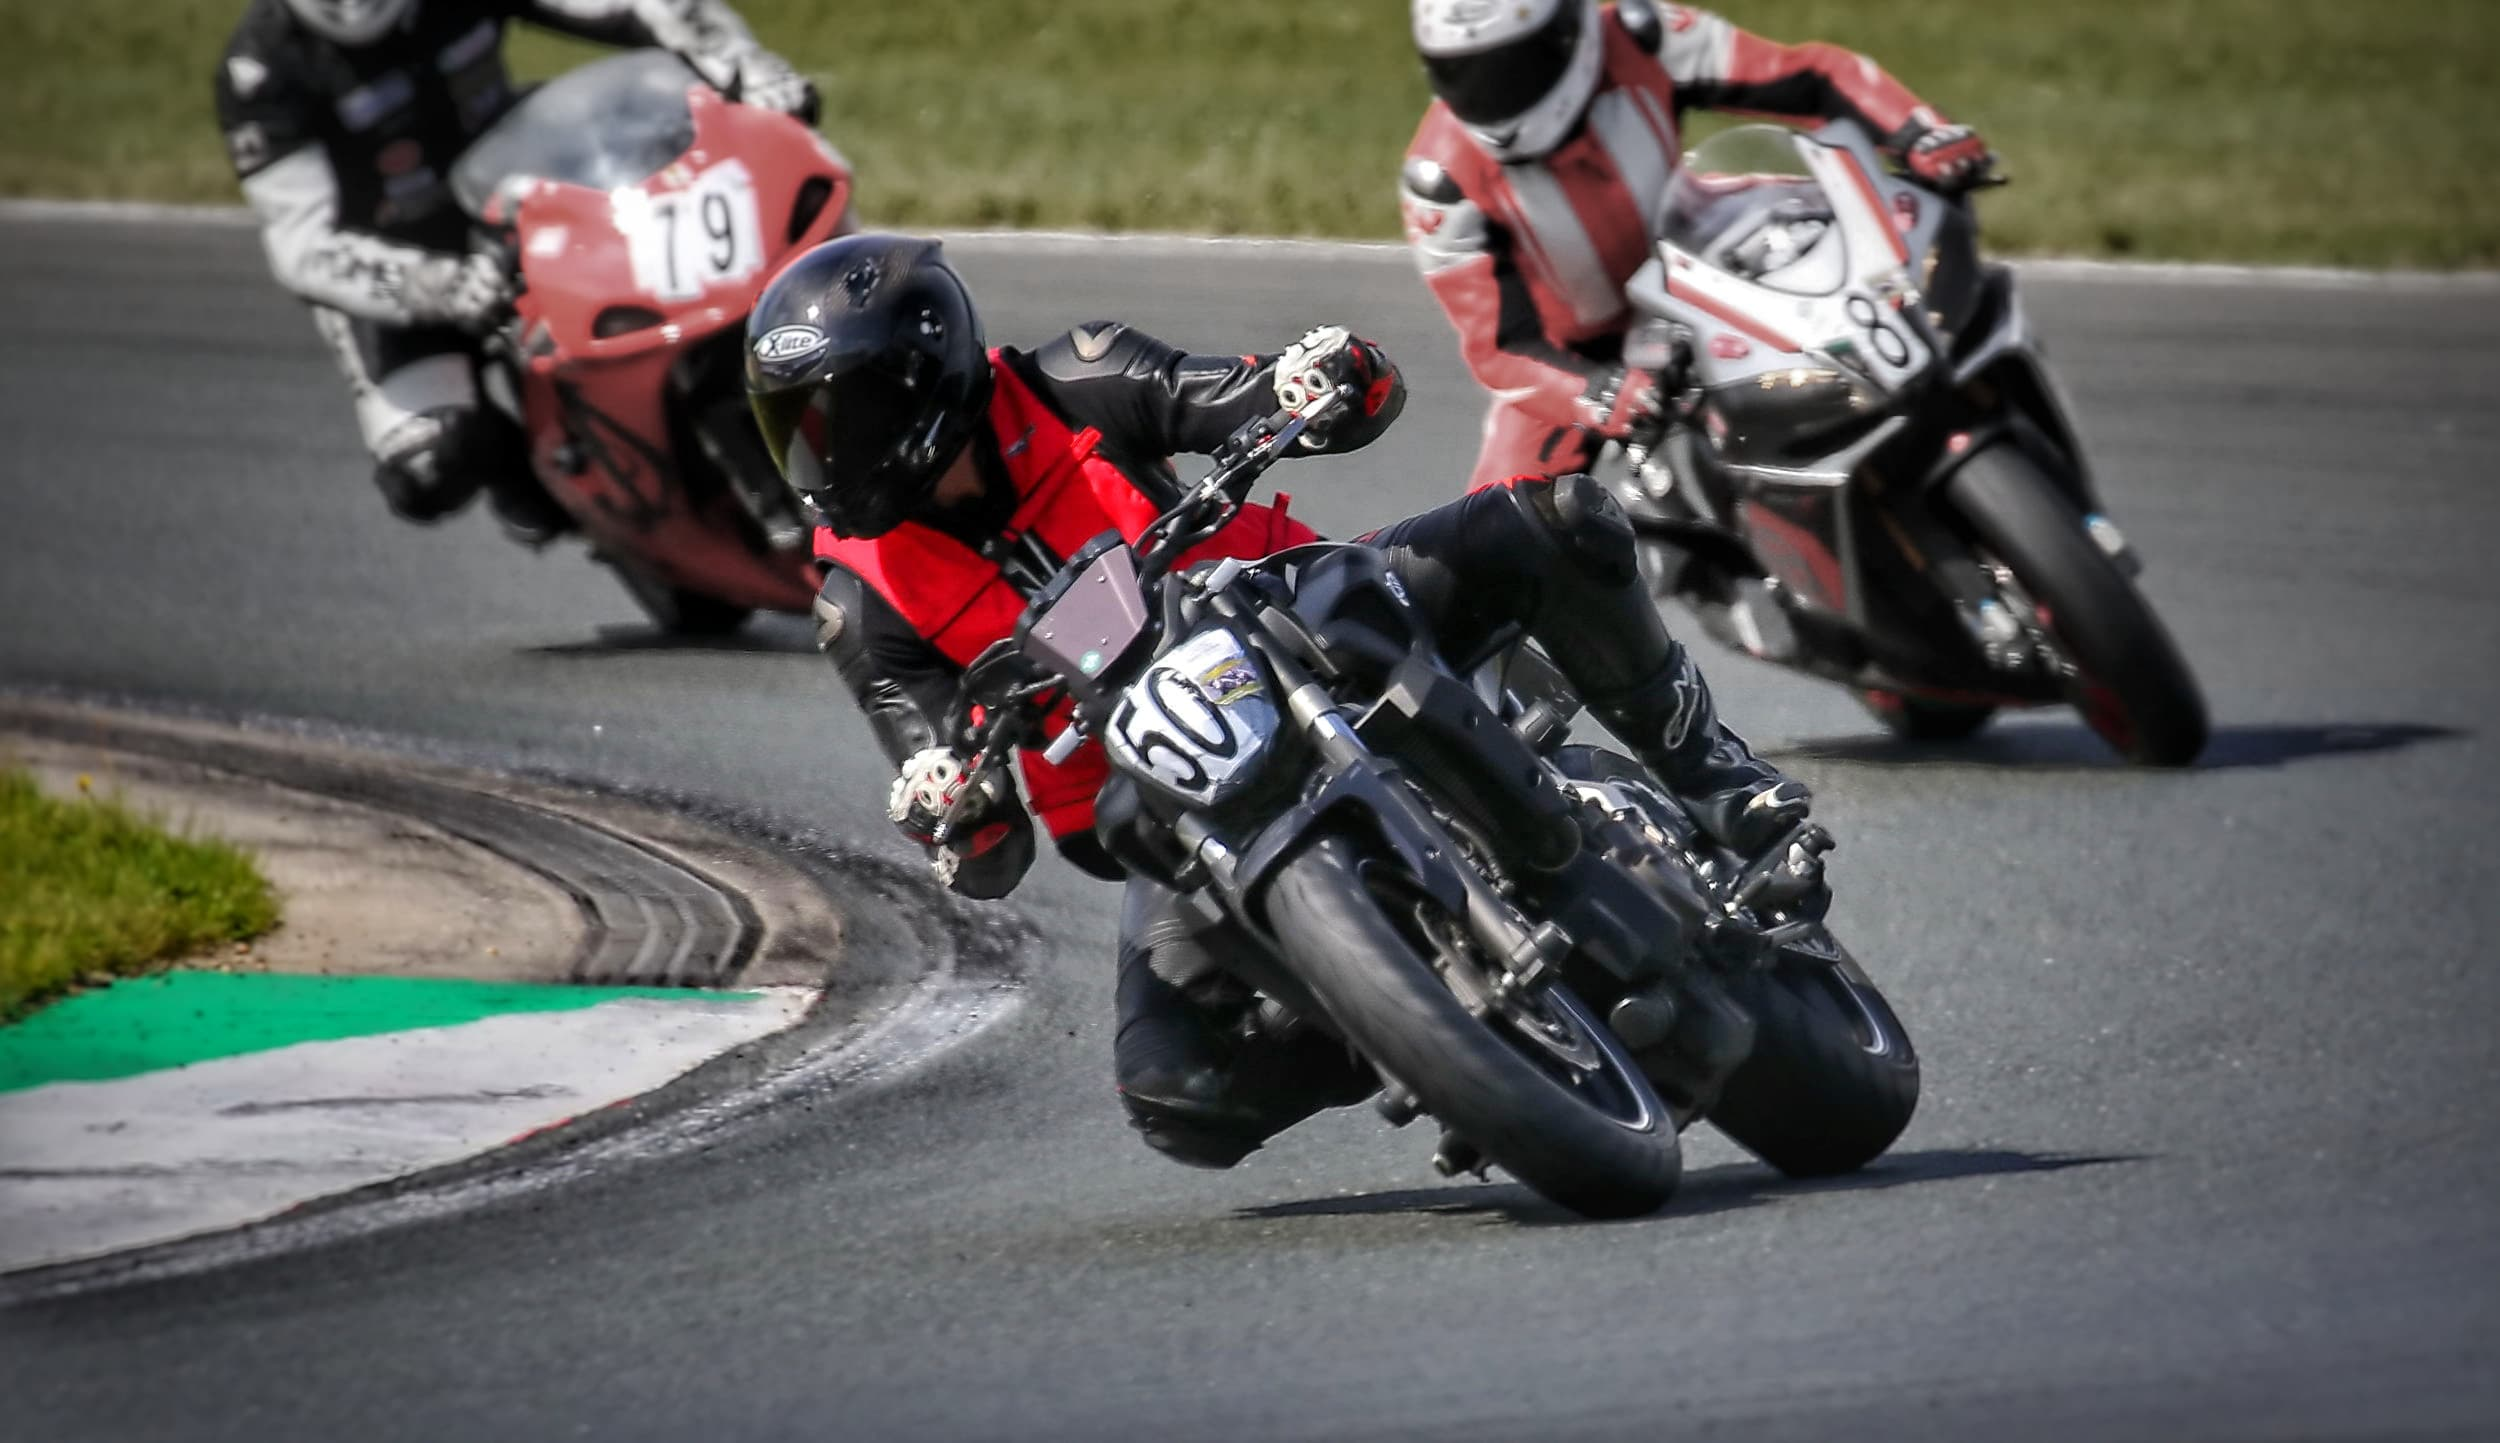 A picture of Alexander Oliver Mader riding his motorcycle (a Yamaha MT 07) at the racetrack Motorsport Arena in Oschersleben, Germany.